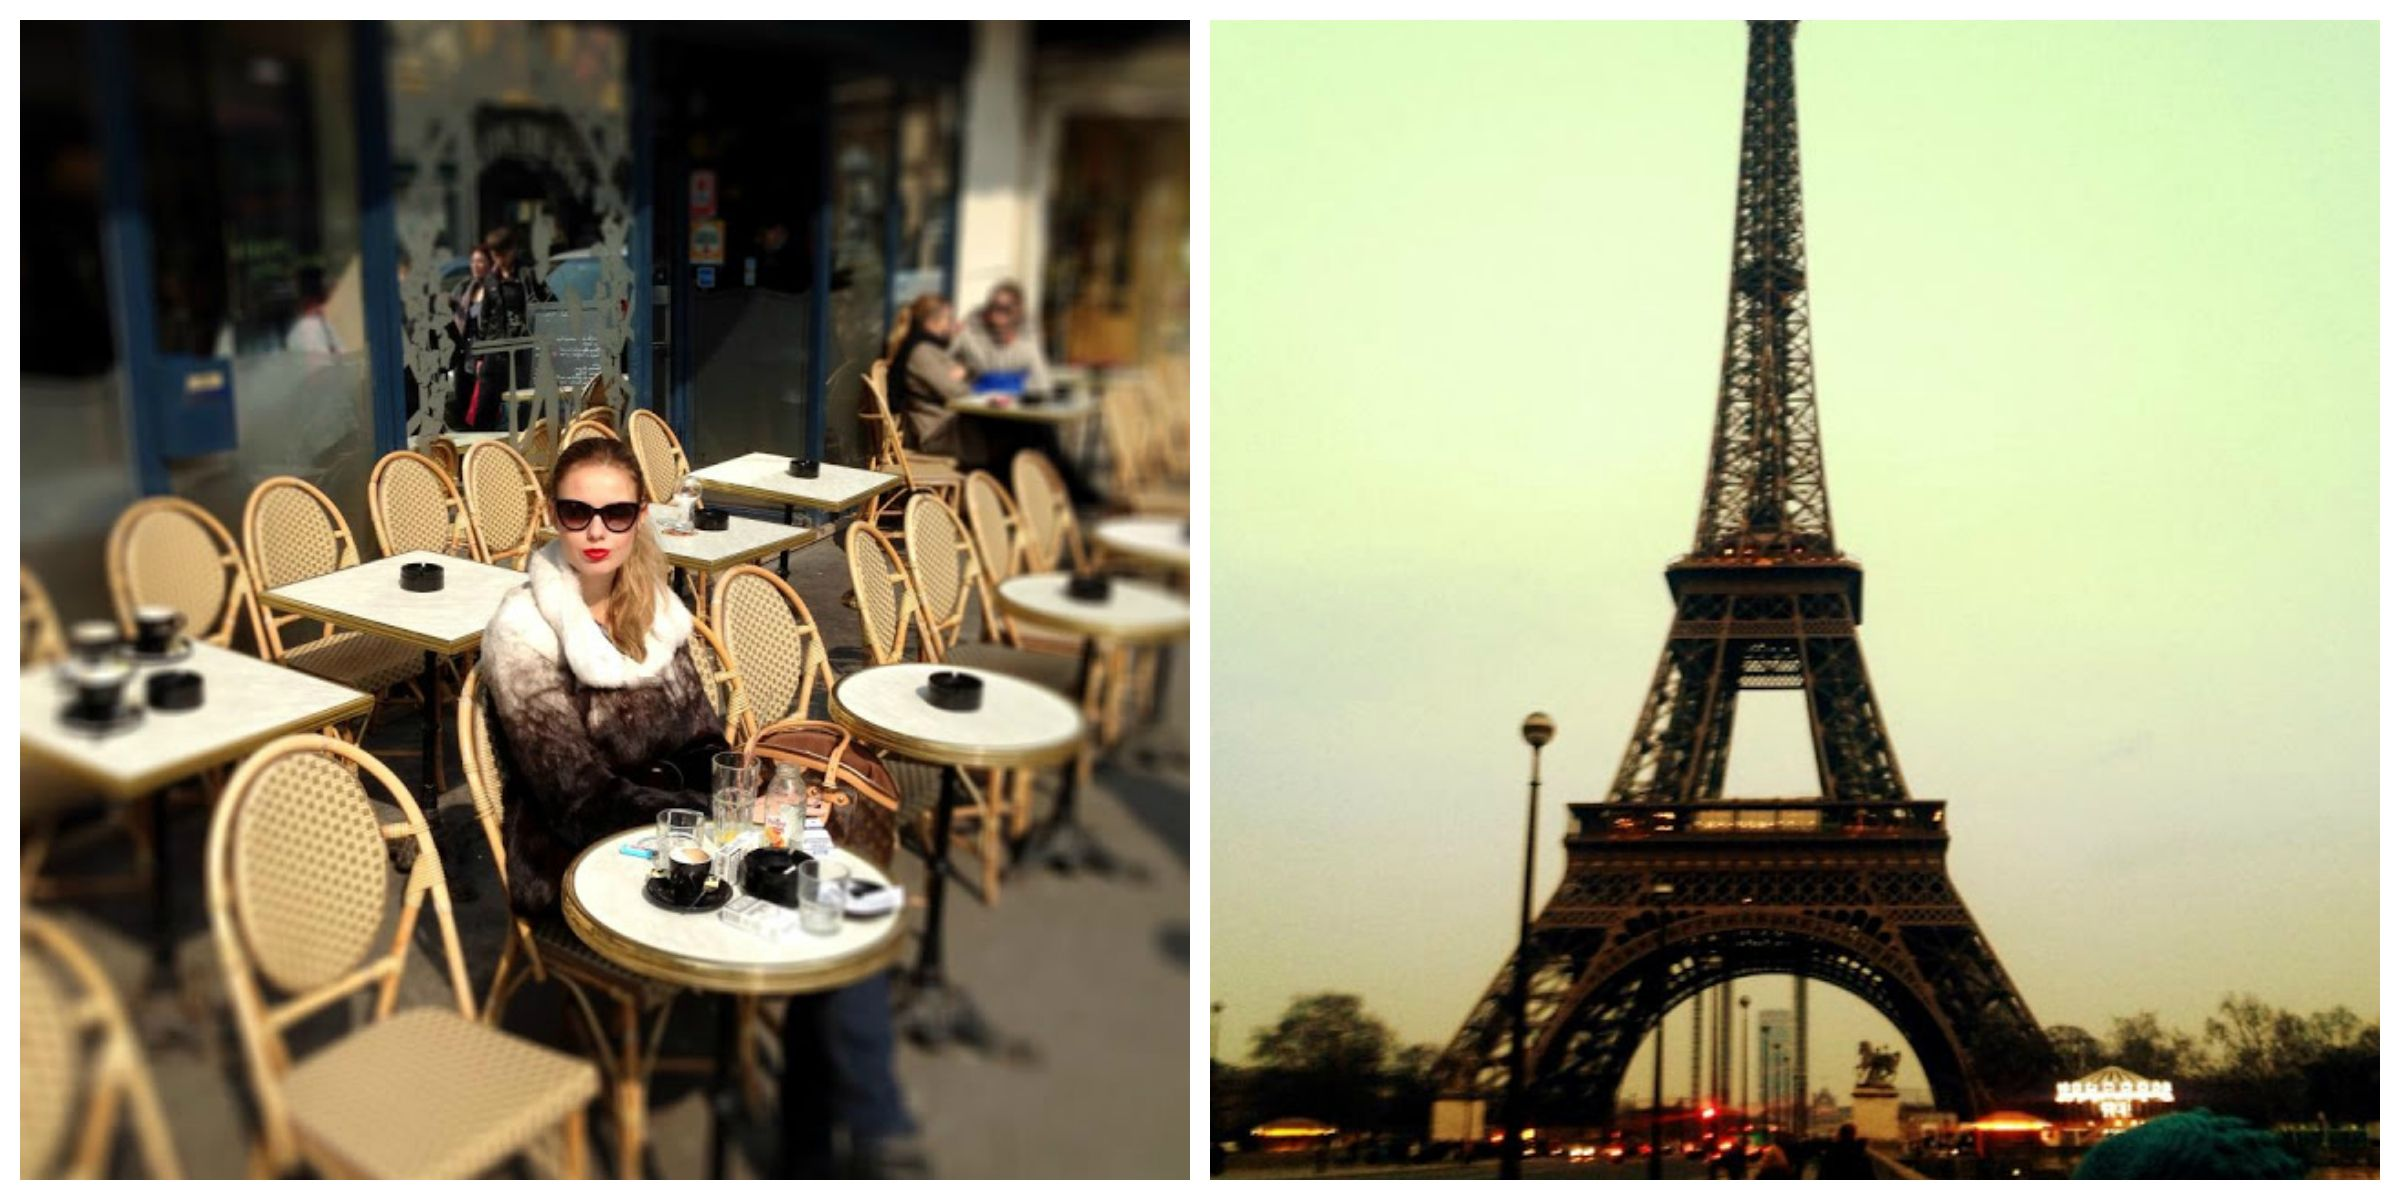 #Fashionistas read and see photos of my trip to #Paris for #Easter at http://www.clubfashionista.com/2013/04/easter-in-france.html. Where did you spend your holidays? #Fashion #EifferTower